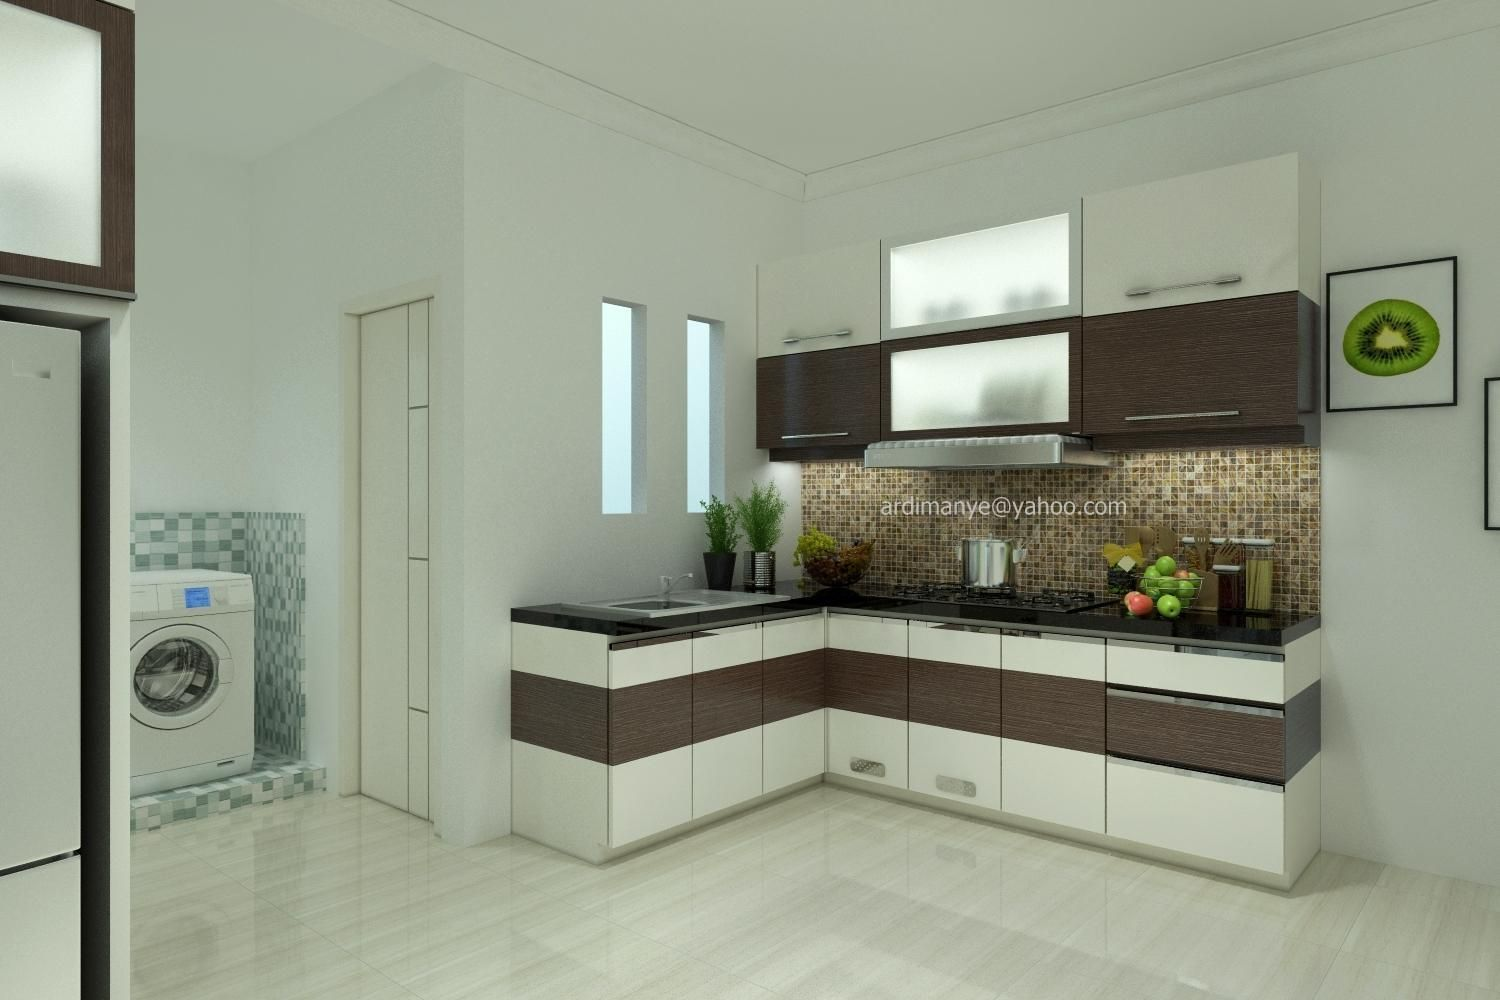 Interior dapur minimalis kitchen set makassar